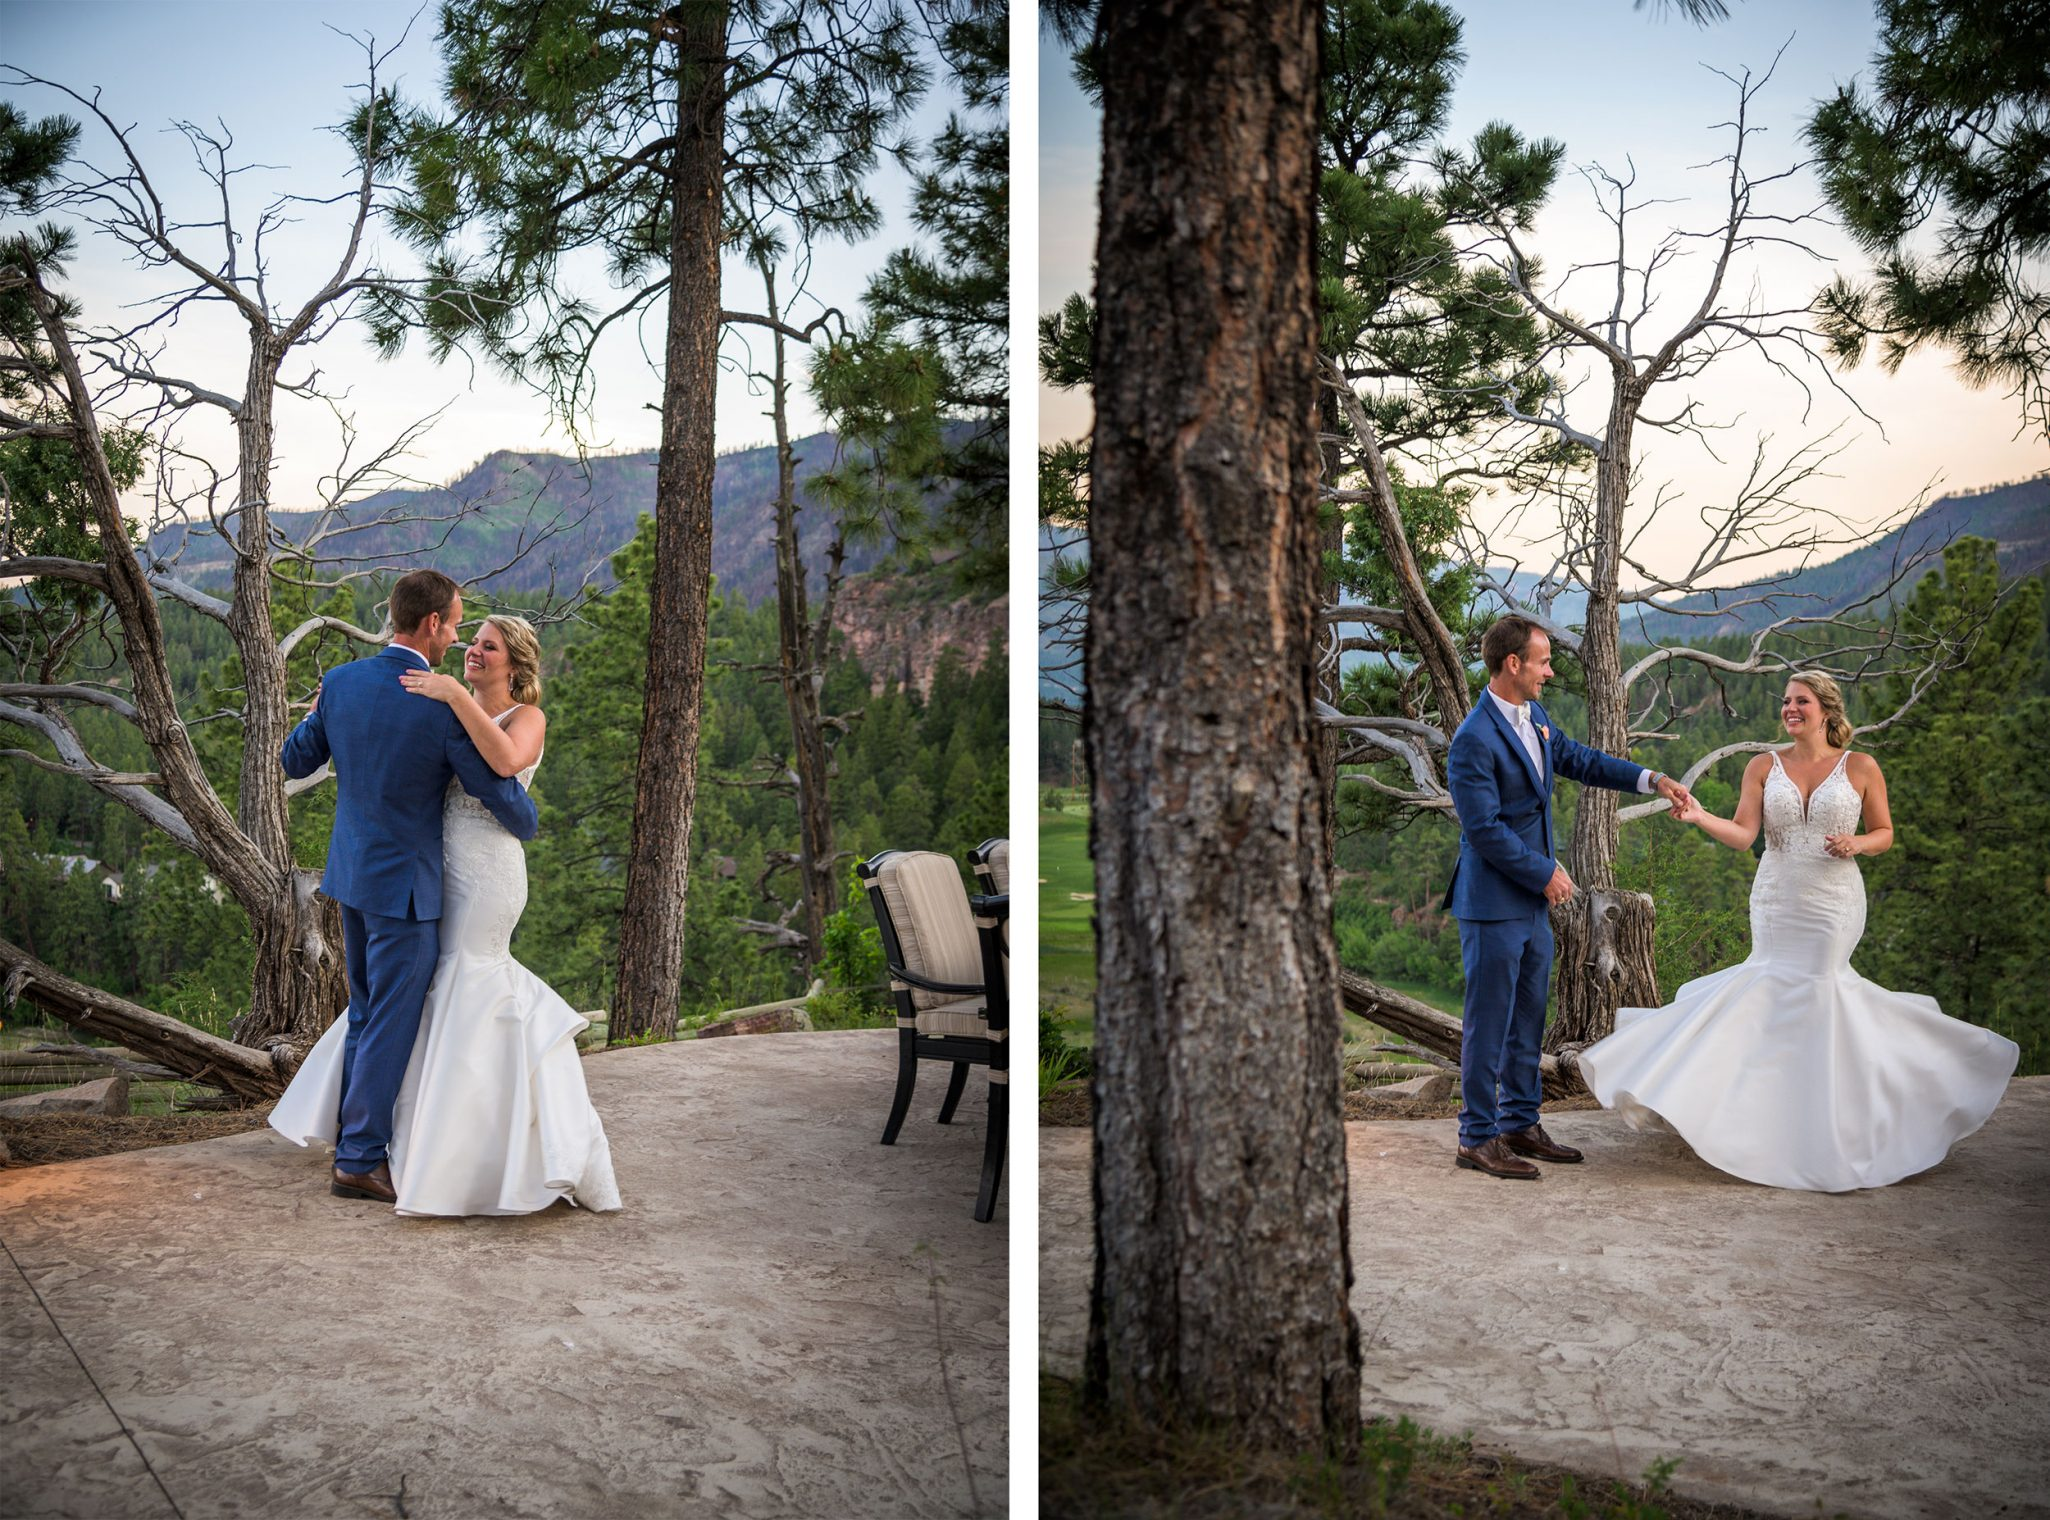 Bride & groom dancing in the mountains